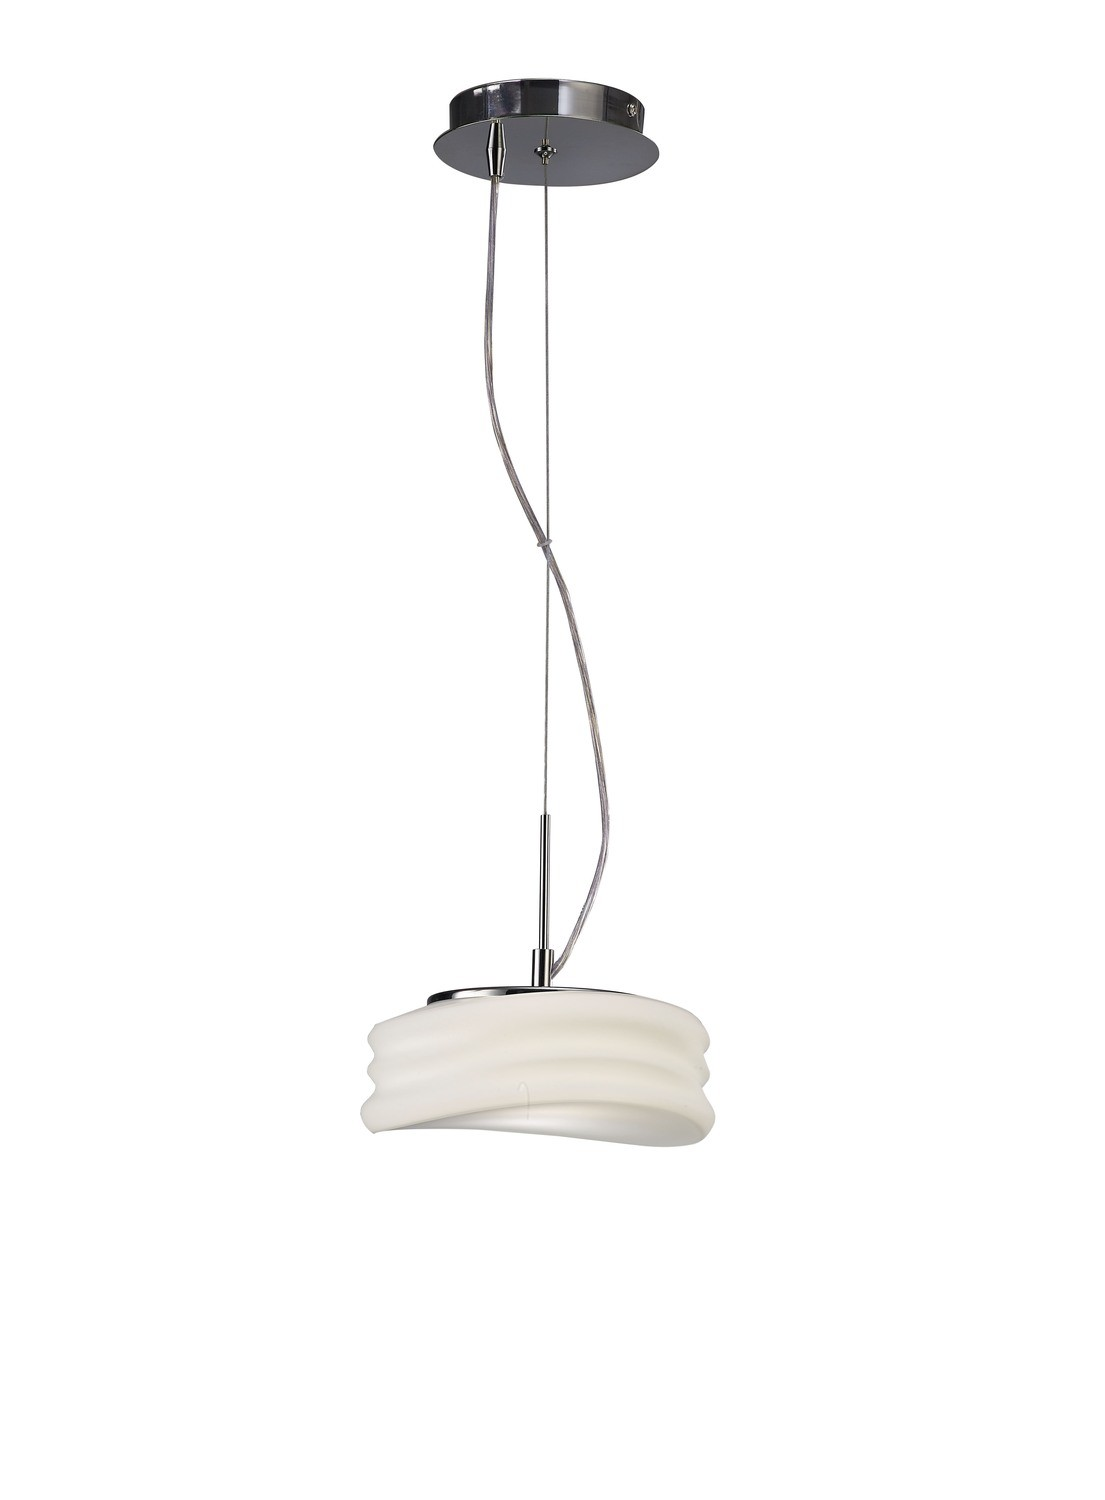 Mediterraneo Pendant 2 Light GU10 Small, Polished Chrome/Frosted White Glass